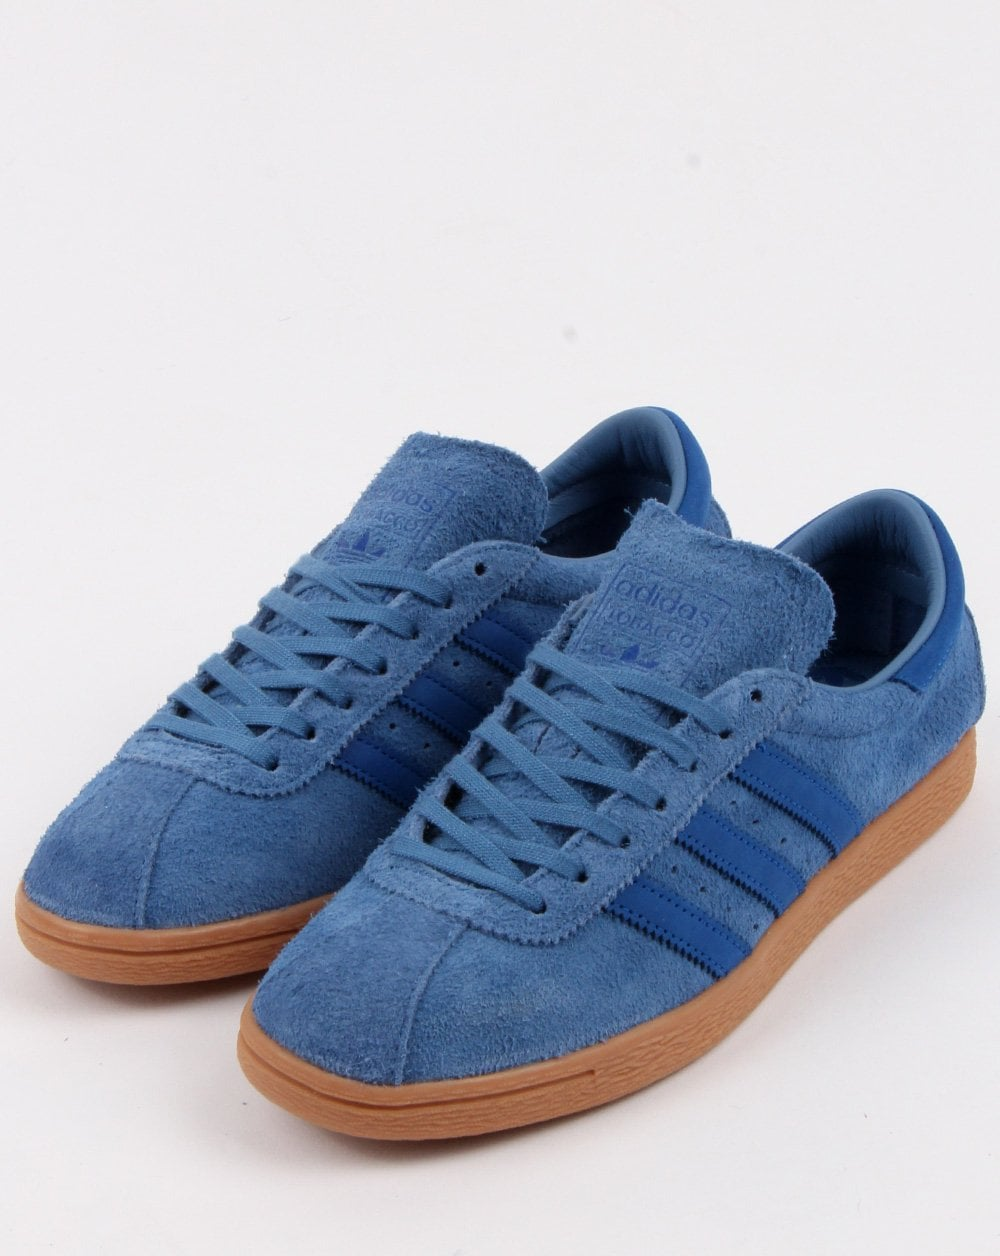 acheter populaire 068b9 96dc3 Adidas Tobacco Trainers Trace Royal/collegiate Royal